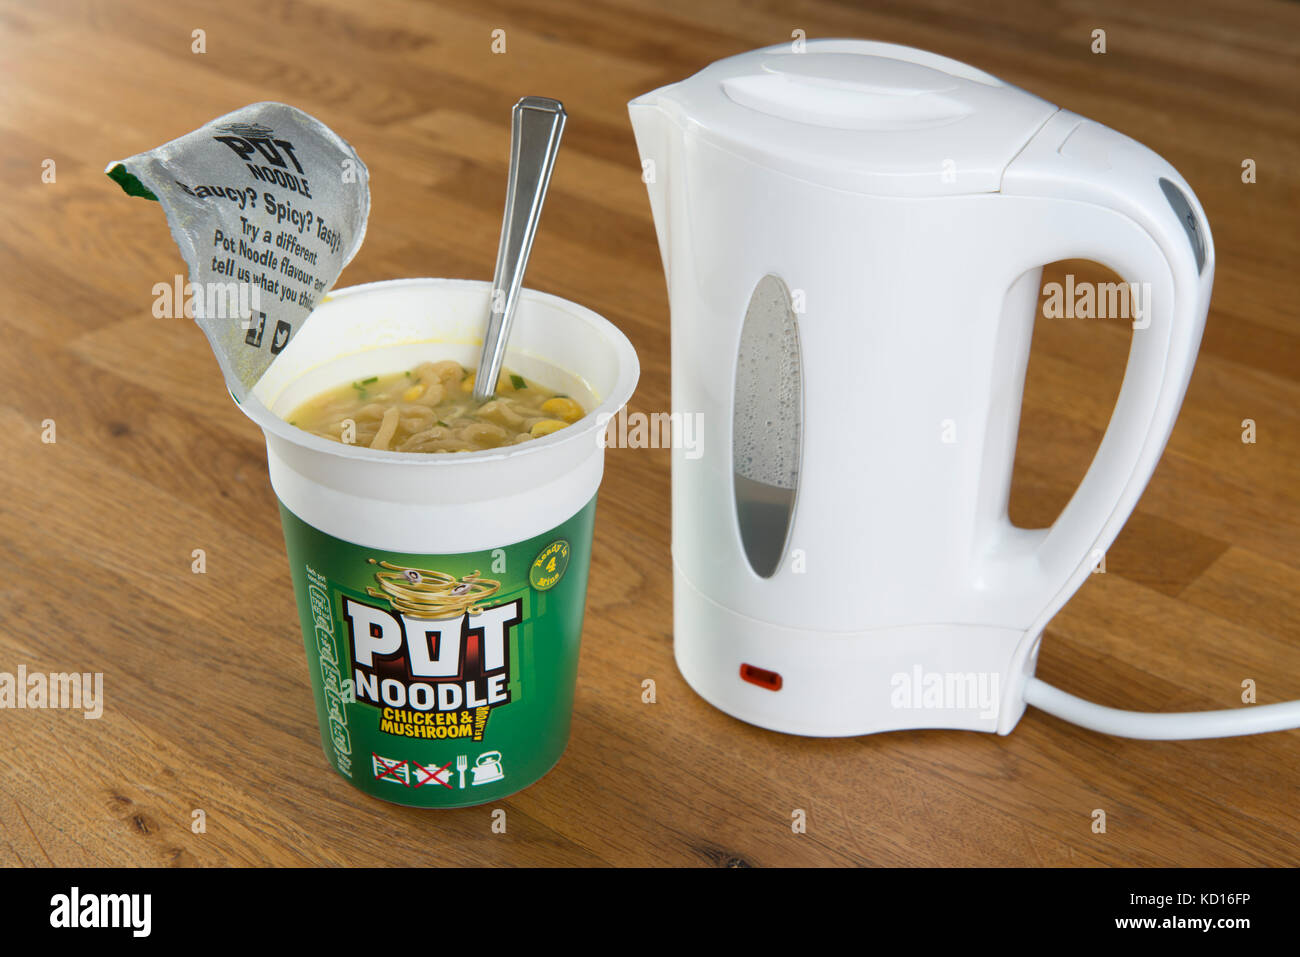 A Unilever Pot Noodle (Chicken and Mushroom flavour) in the process of being prepared using boiling water from a - Stock Image